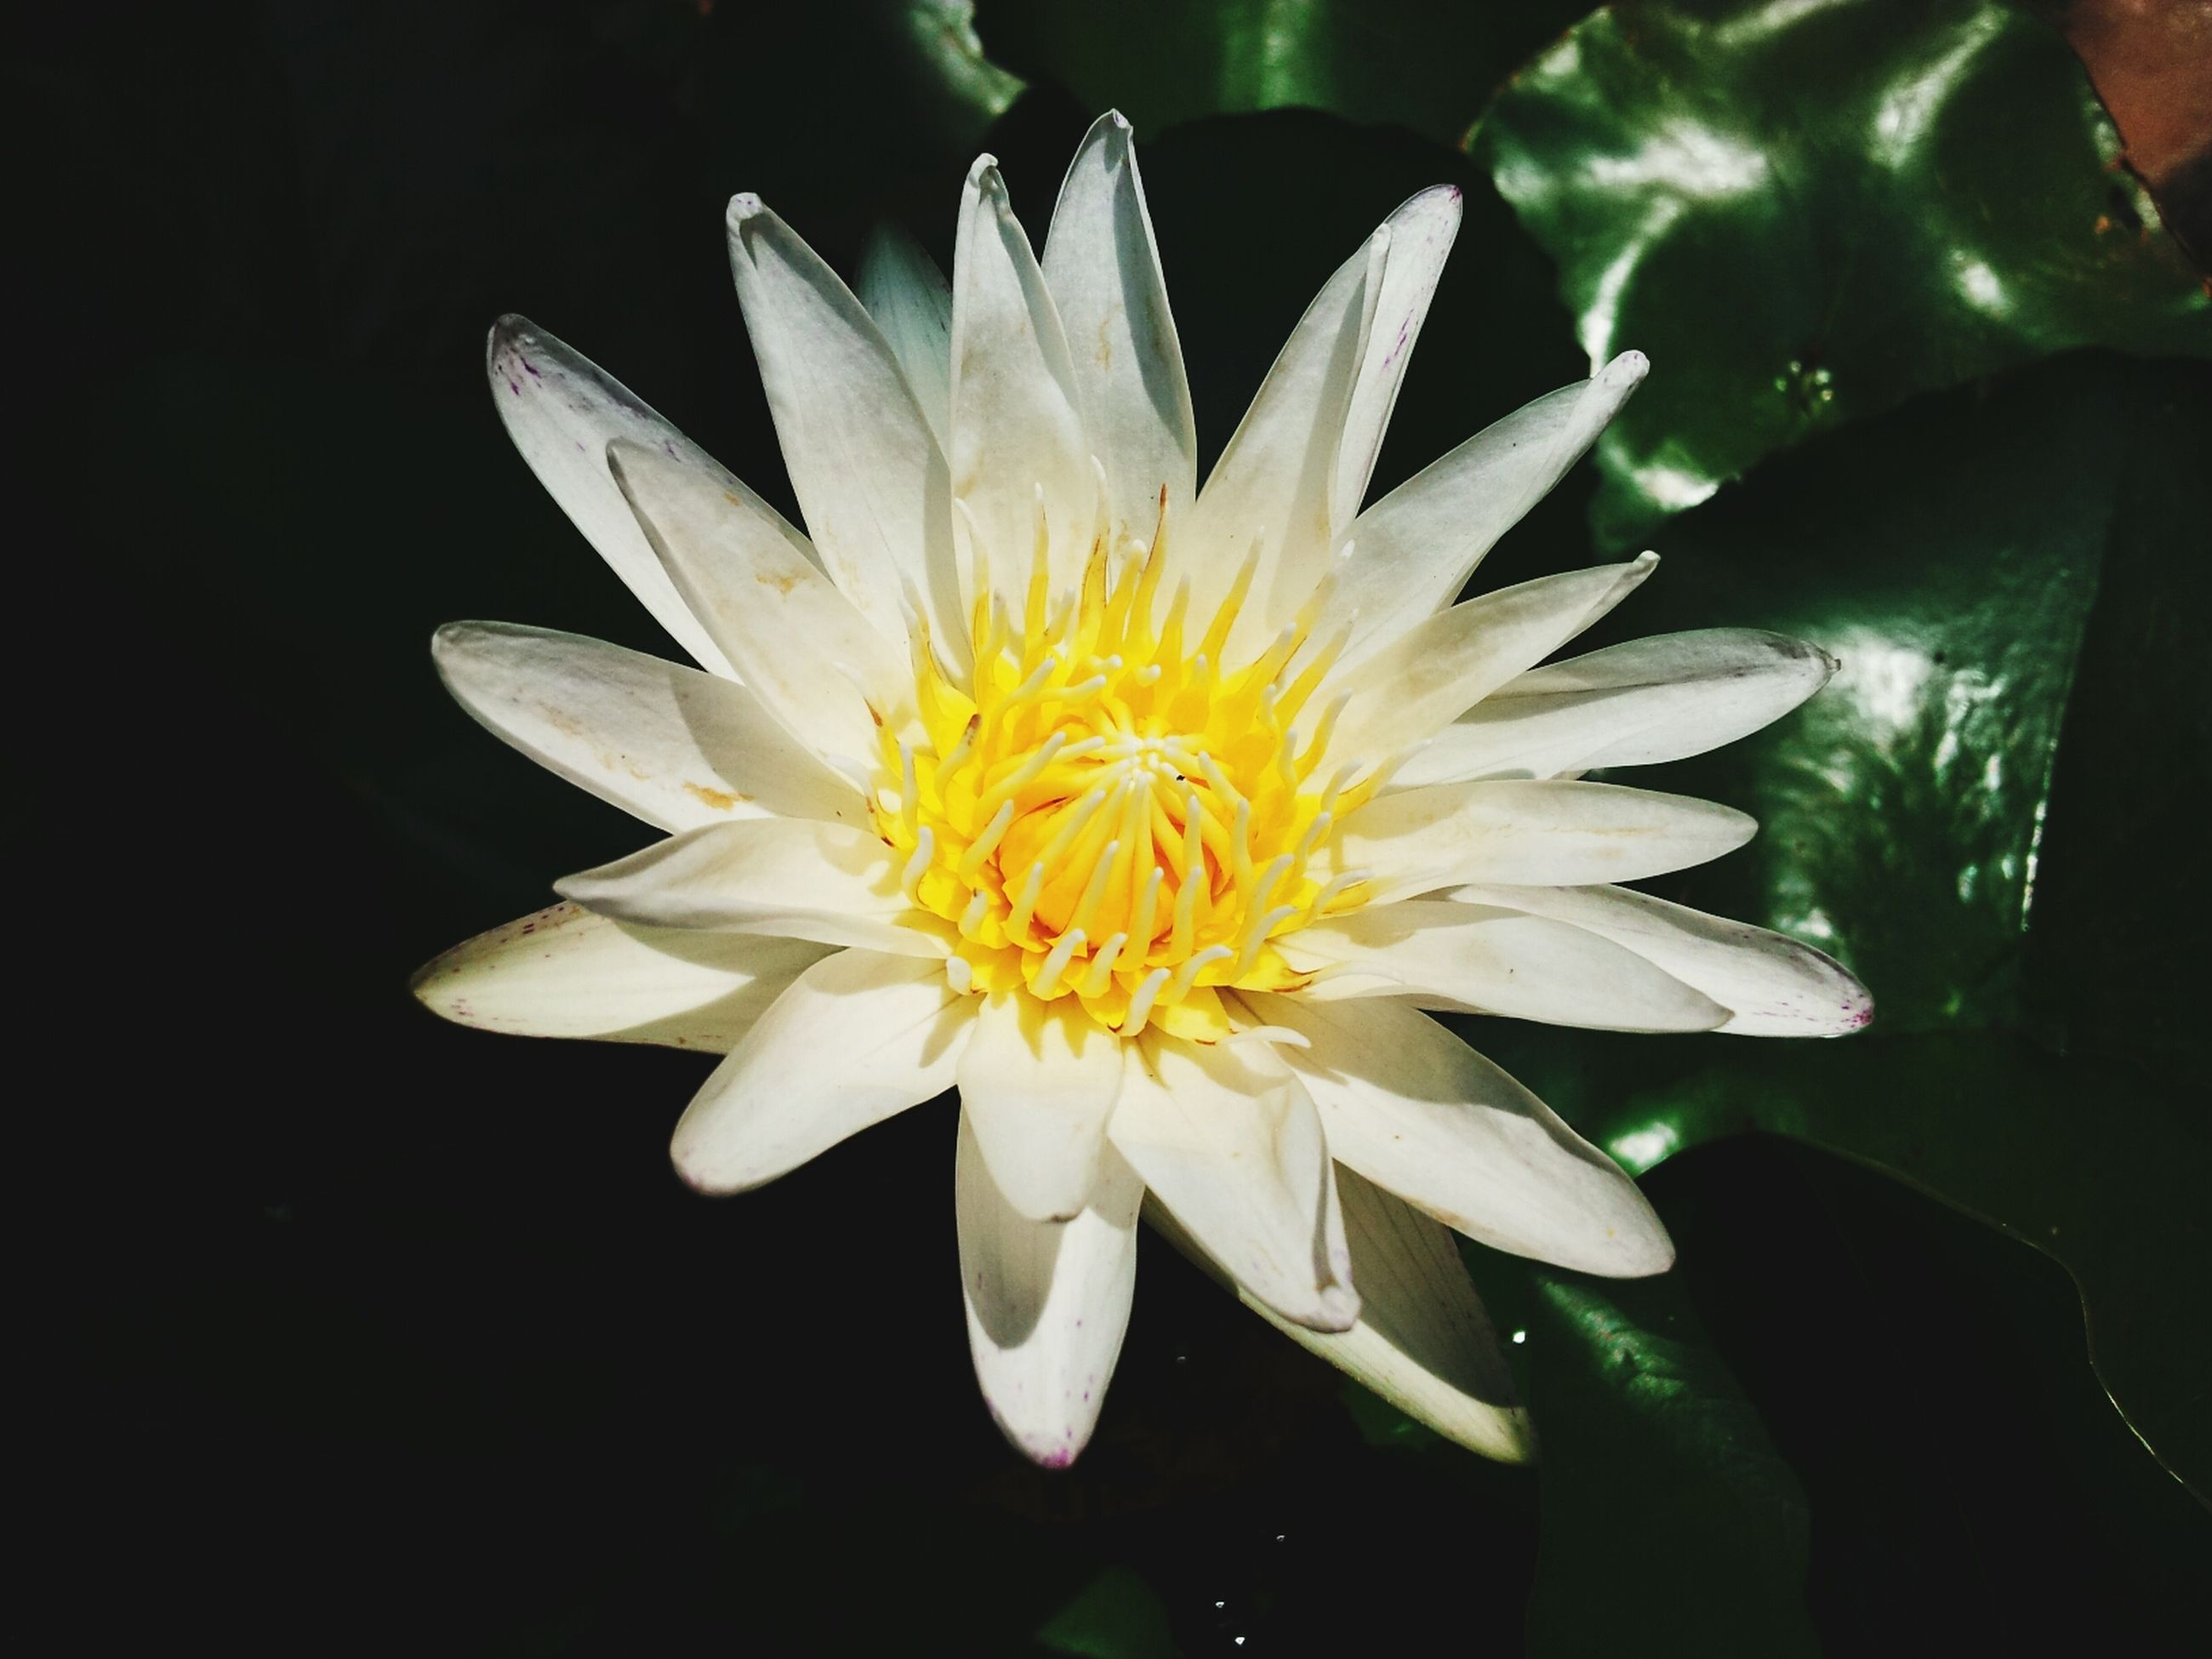 flower, petal, flower head, freshness, fragility, single flower, beauty in nature, white color, pollen, close-up, growth, blooming, nature, yellow, water lily, plant, water, daisy, stamen, in bloom